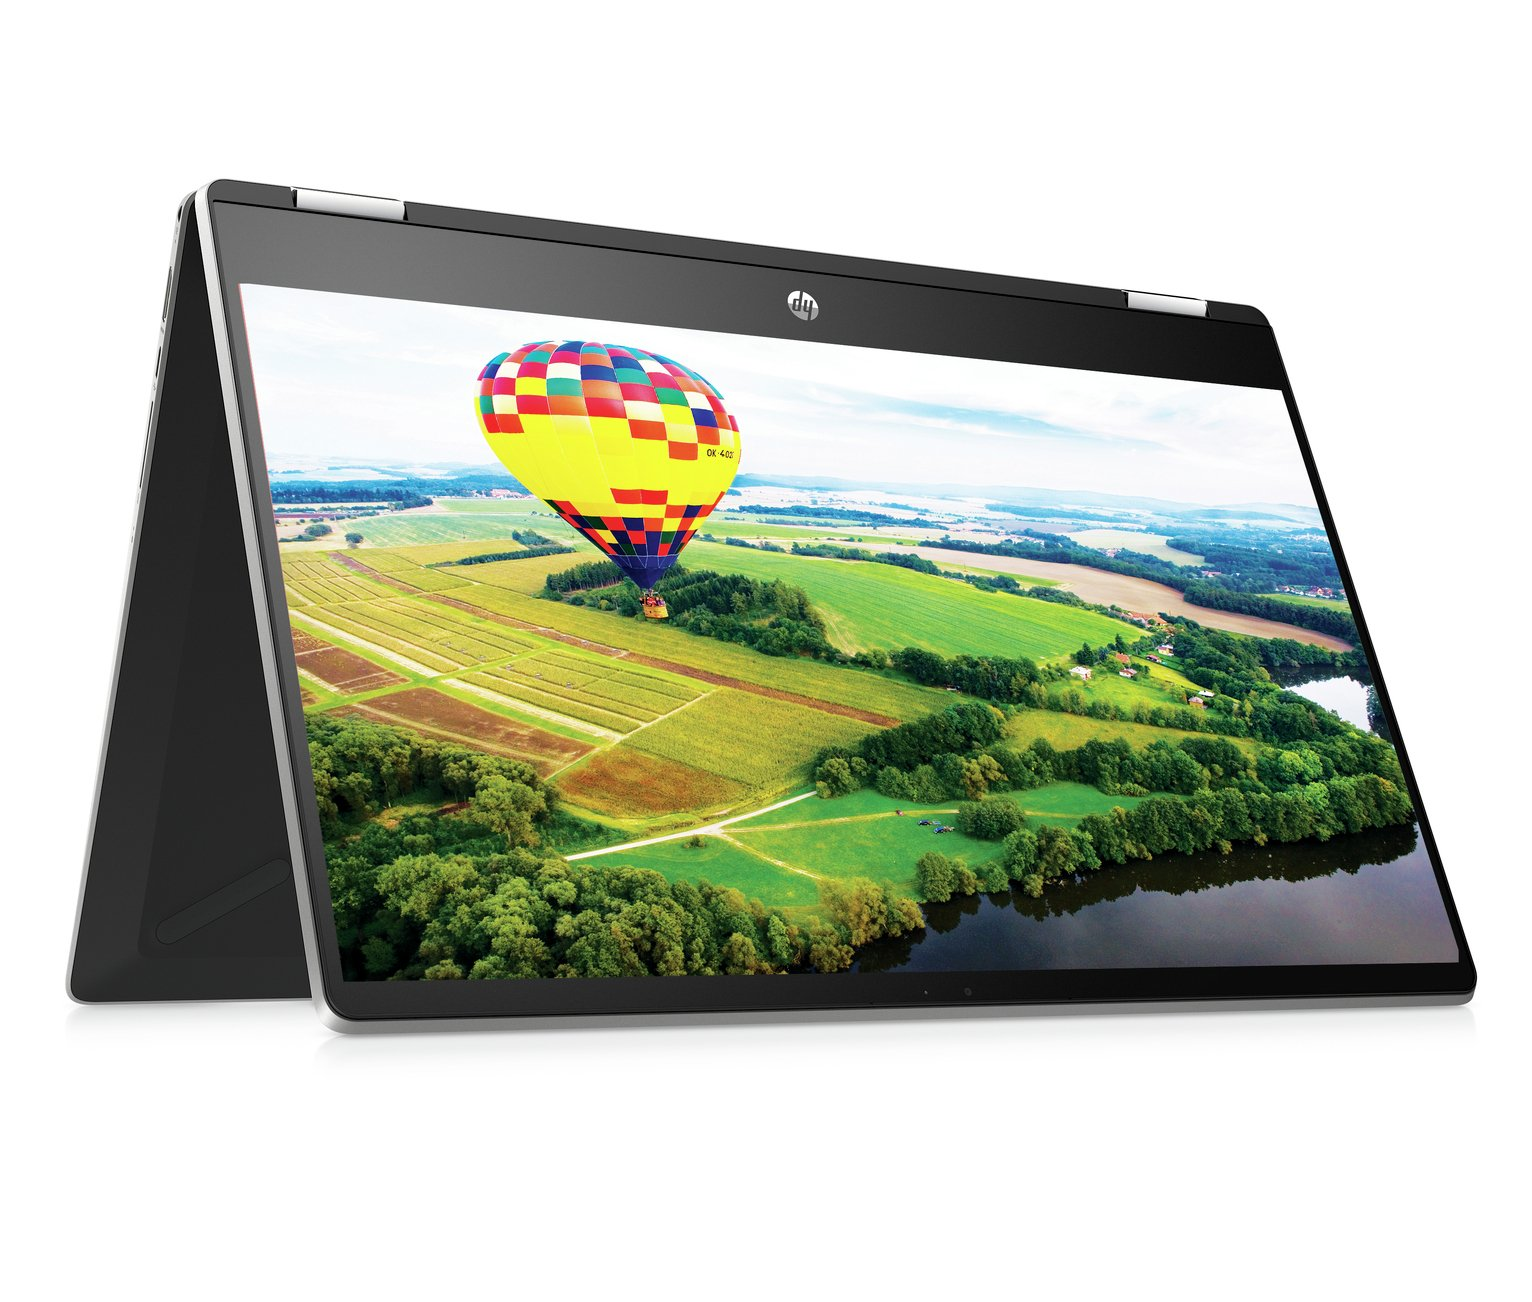 HP Pavilion x360 15.6 Inch i3 8GB 1TB Laptop - Silver